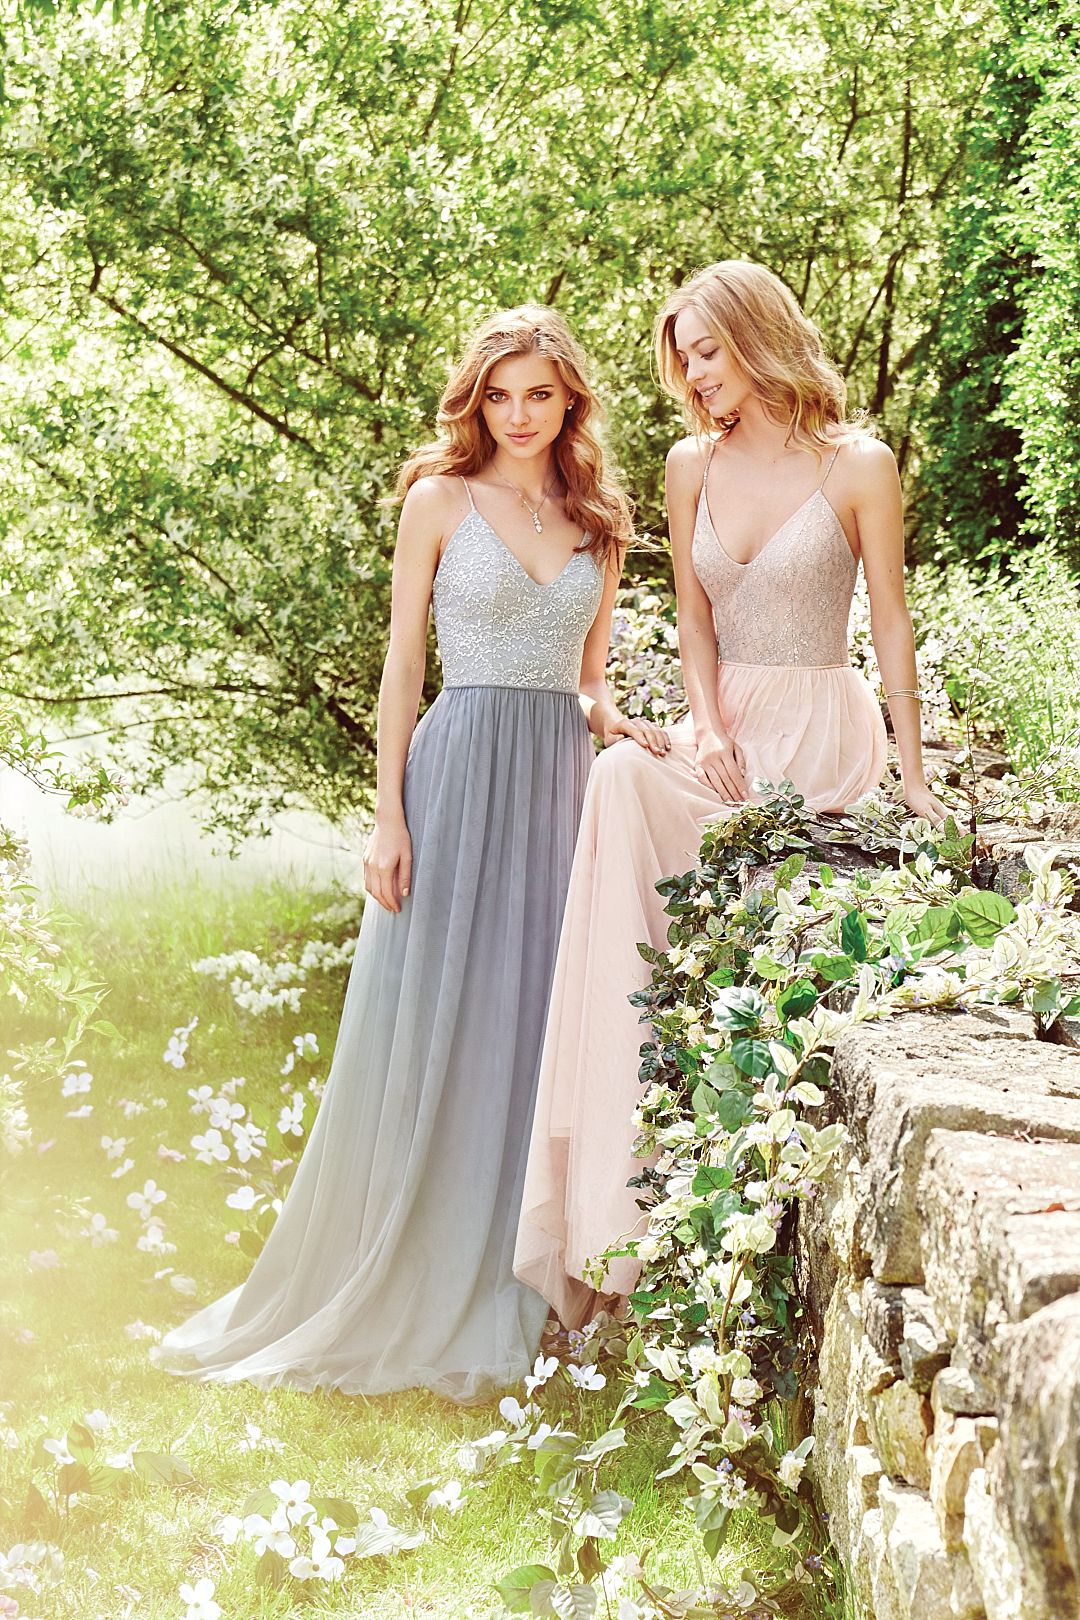 hayley-paige-bridesmaid-dresses-at-wild-heart-bridal-boutique-in-kent